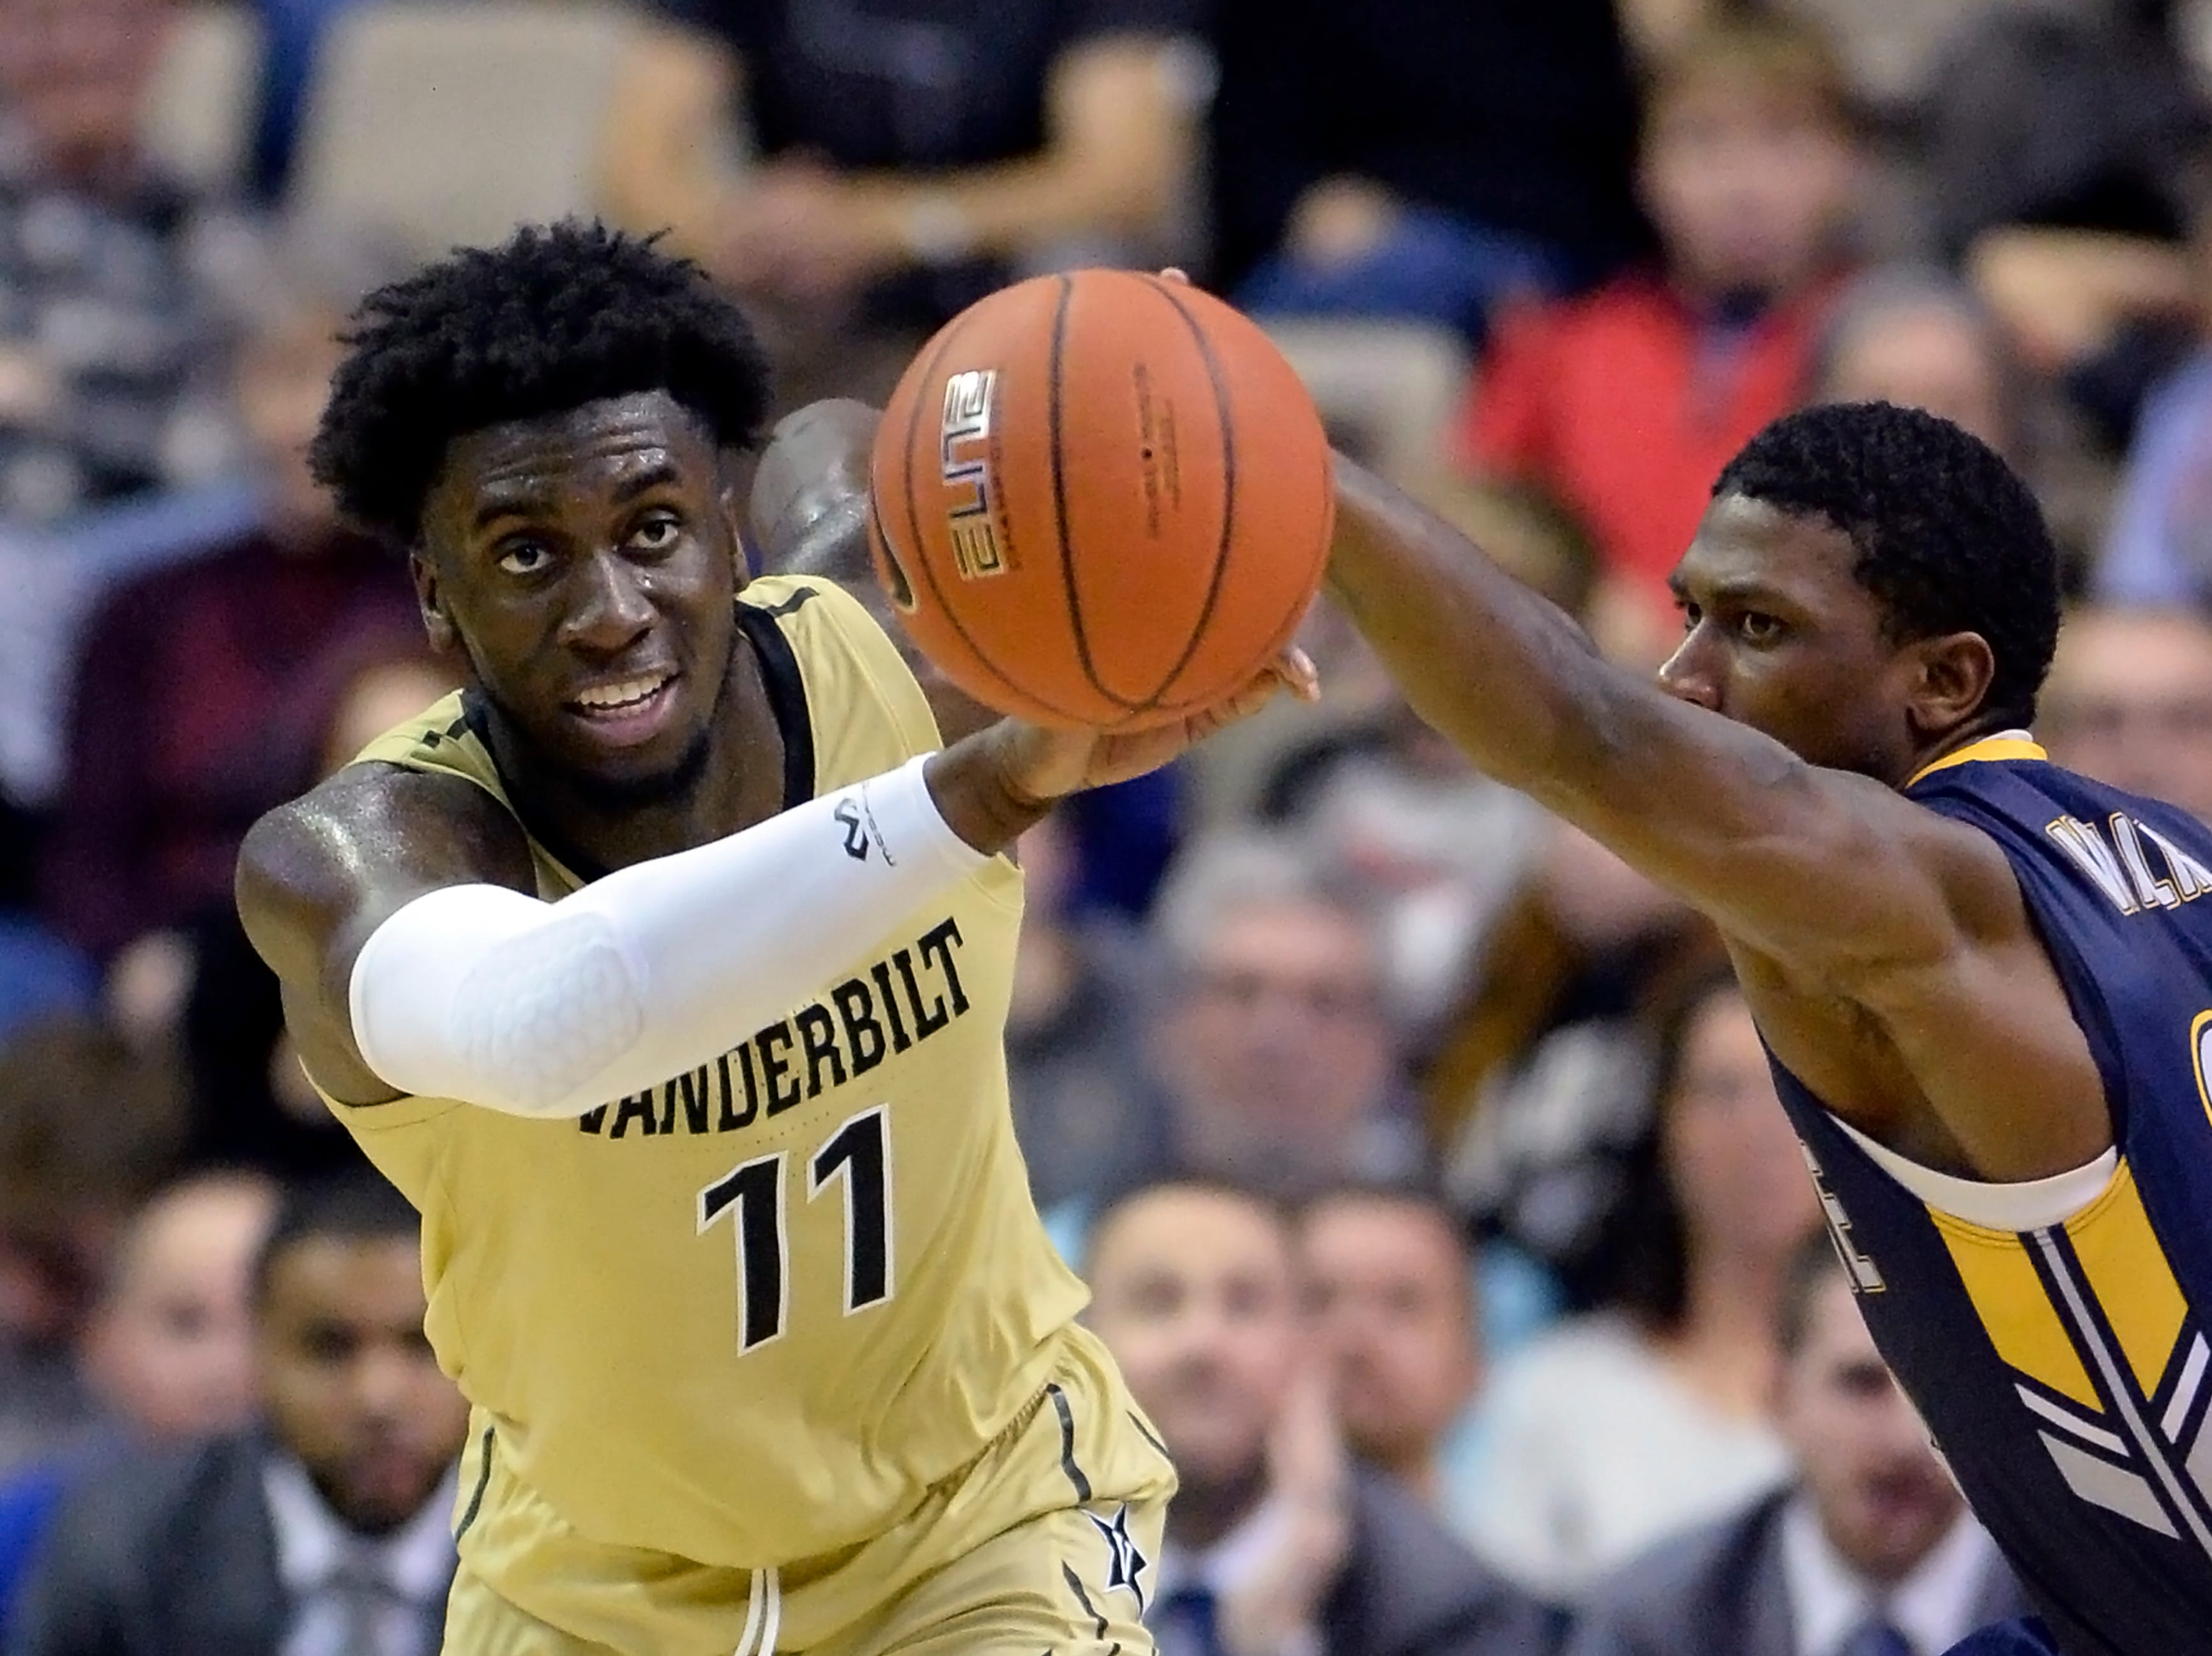 Vanderbilt forward Simisola Shittu (11) and Kent State guard Jaylin Walker (23) chase a loose ball during the second half of an NCAA college basketball game Friday, Nov. 23, 2018, in Nashville, Tenn. Kent State won 77-75.